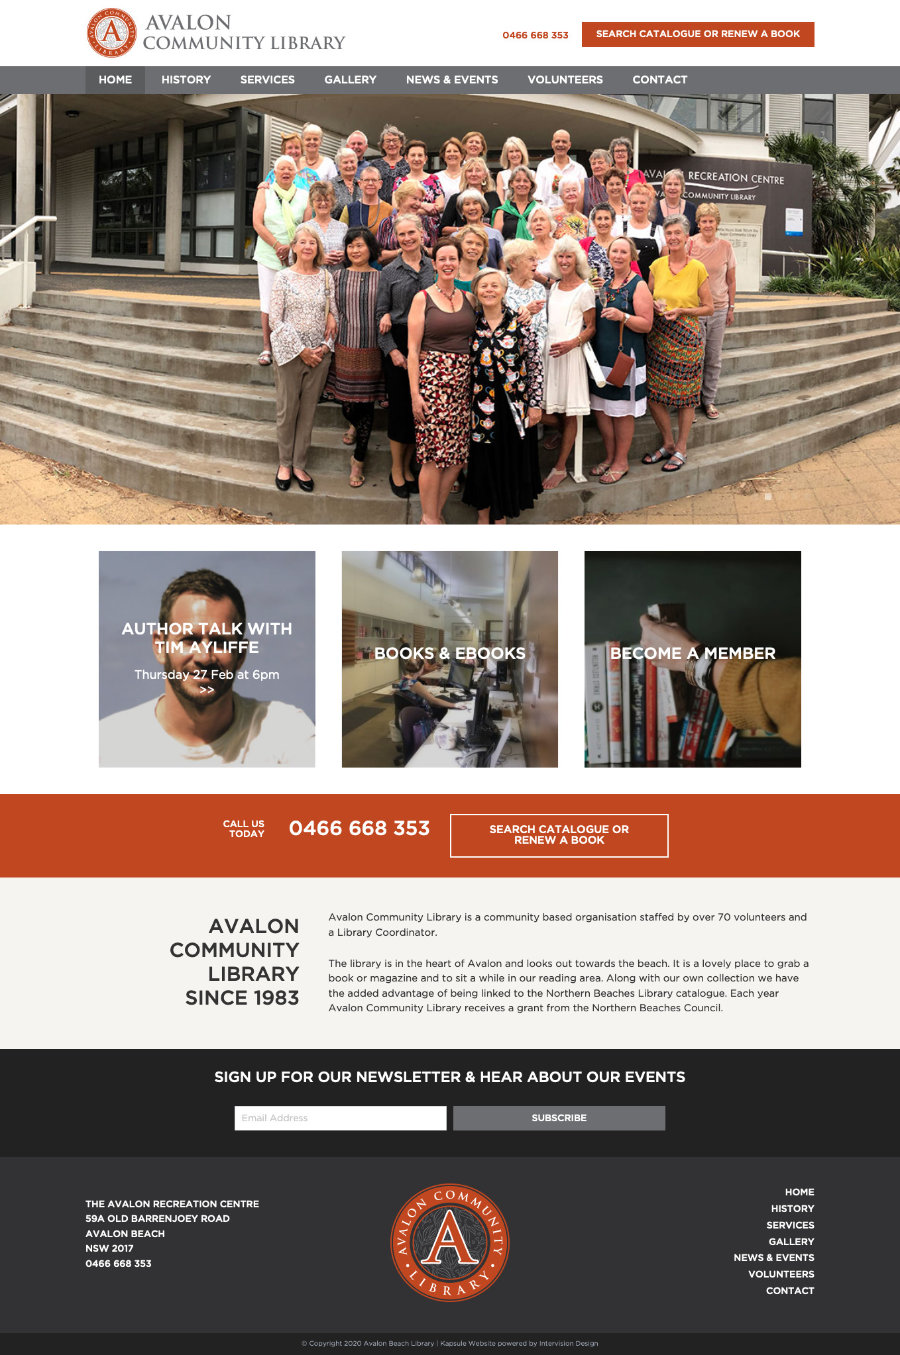 Avalon Library by Kapsule Websites